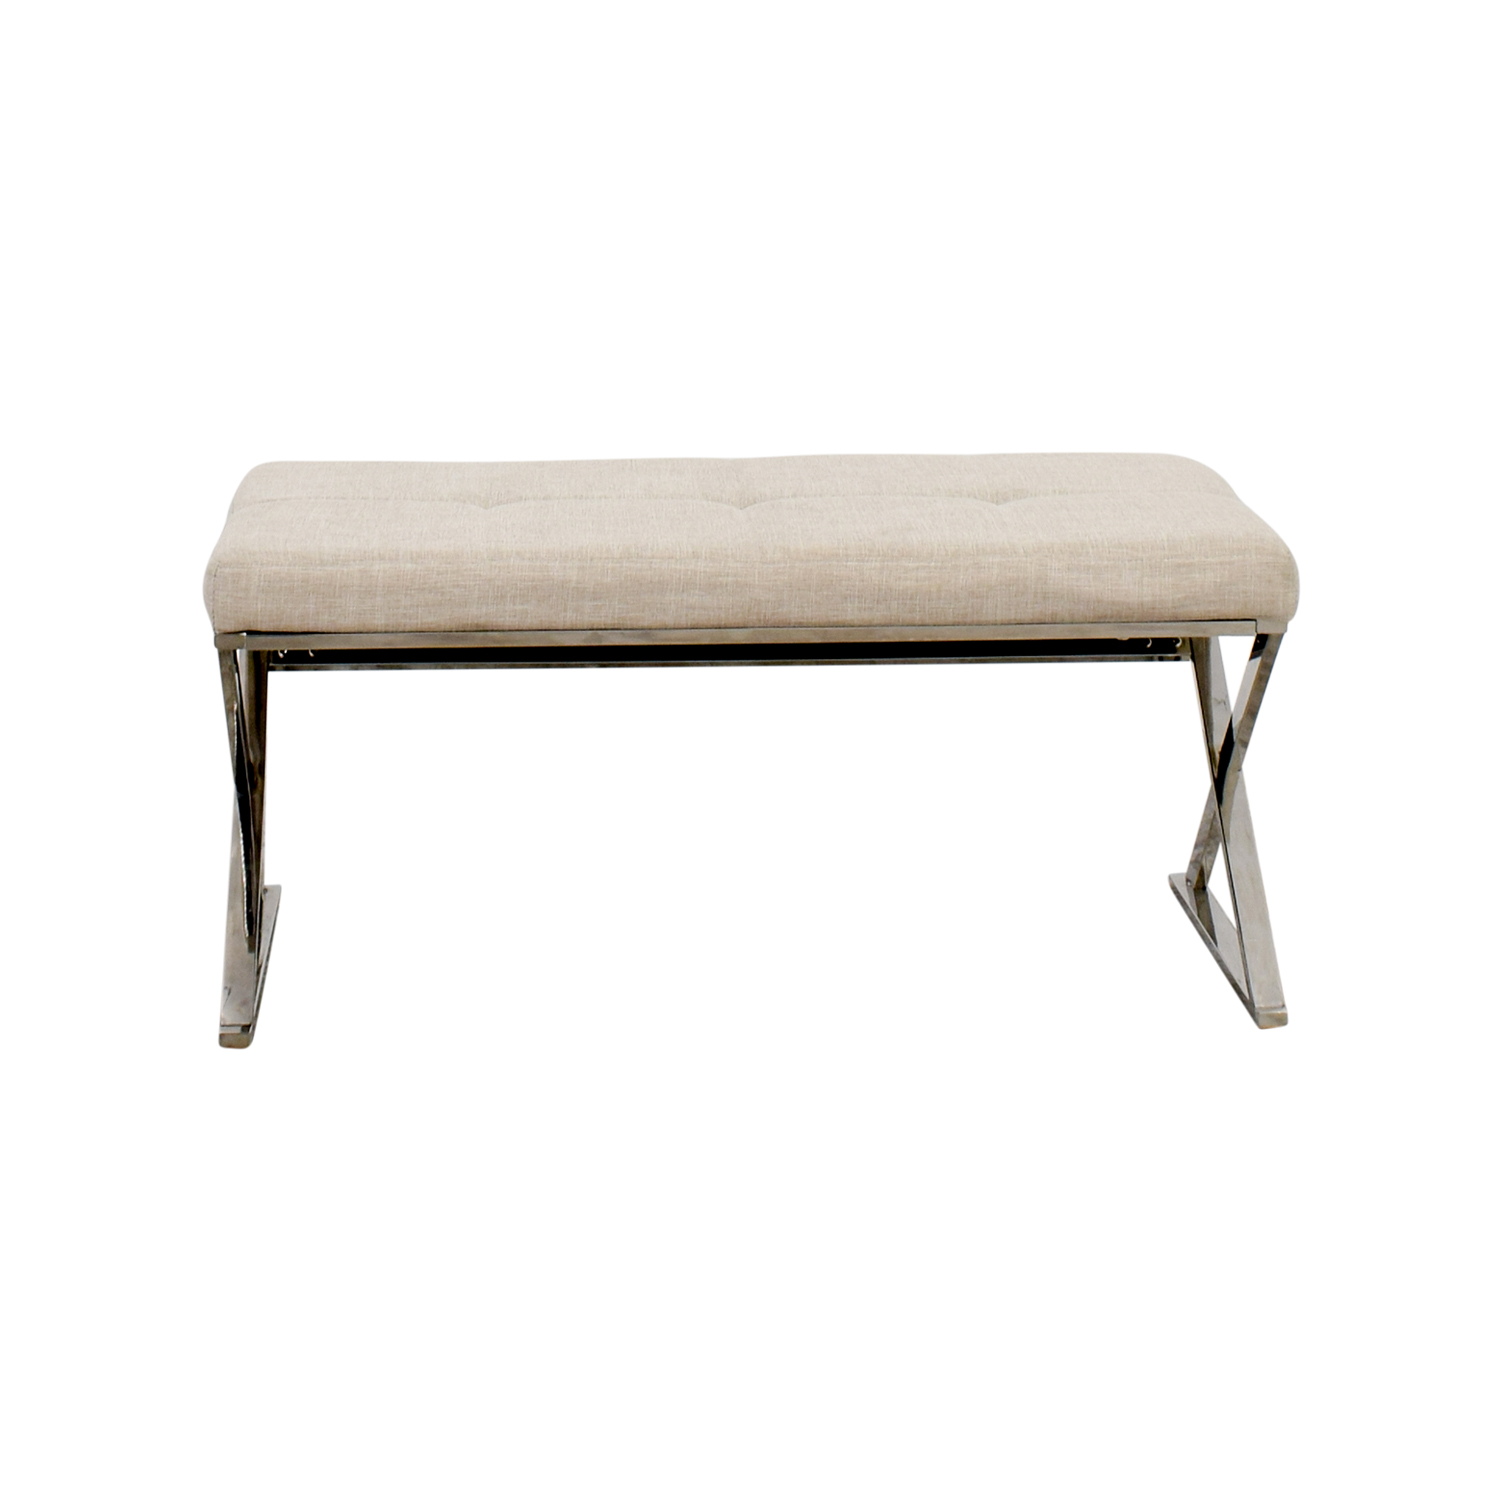 Wholesale Interiors Wholesale Interiors Tufted Bench